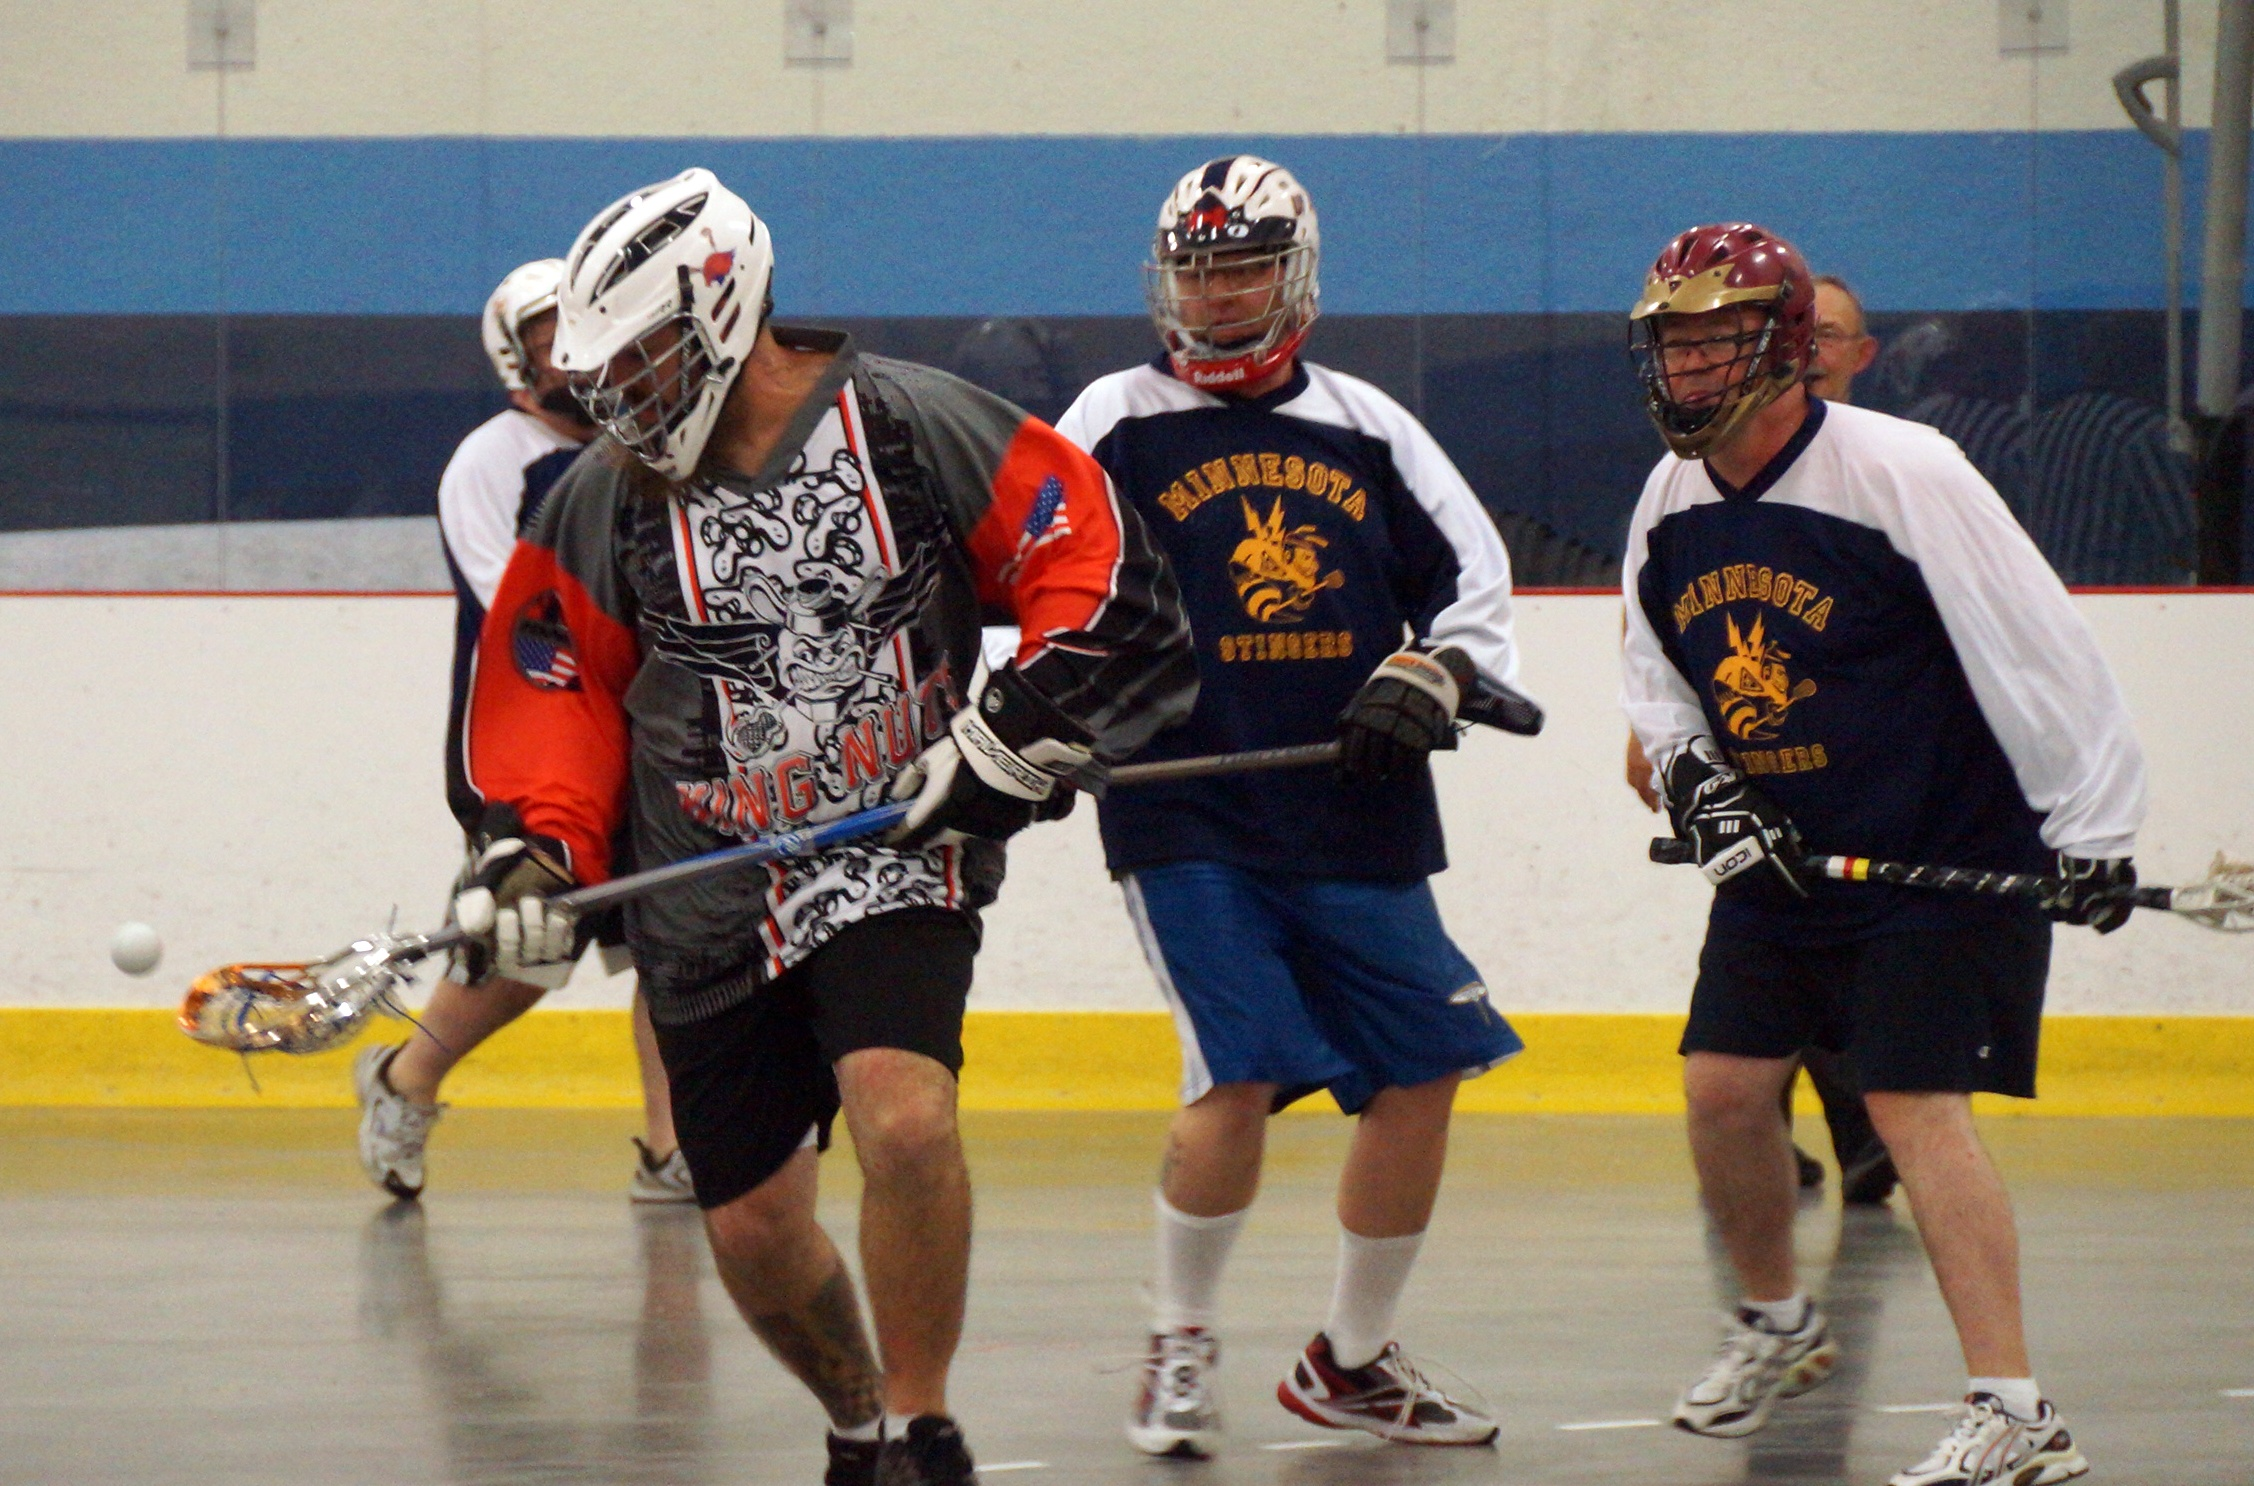 Several men playing box lacrosse in a tournament. Art Coulson is on the right in a maroon helmet and Minnesota Stinghers jersey